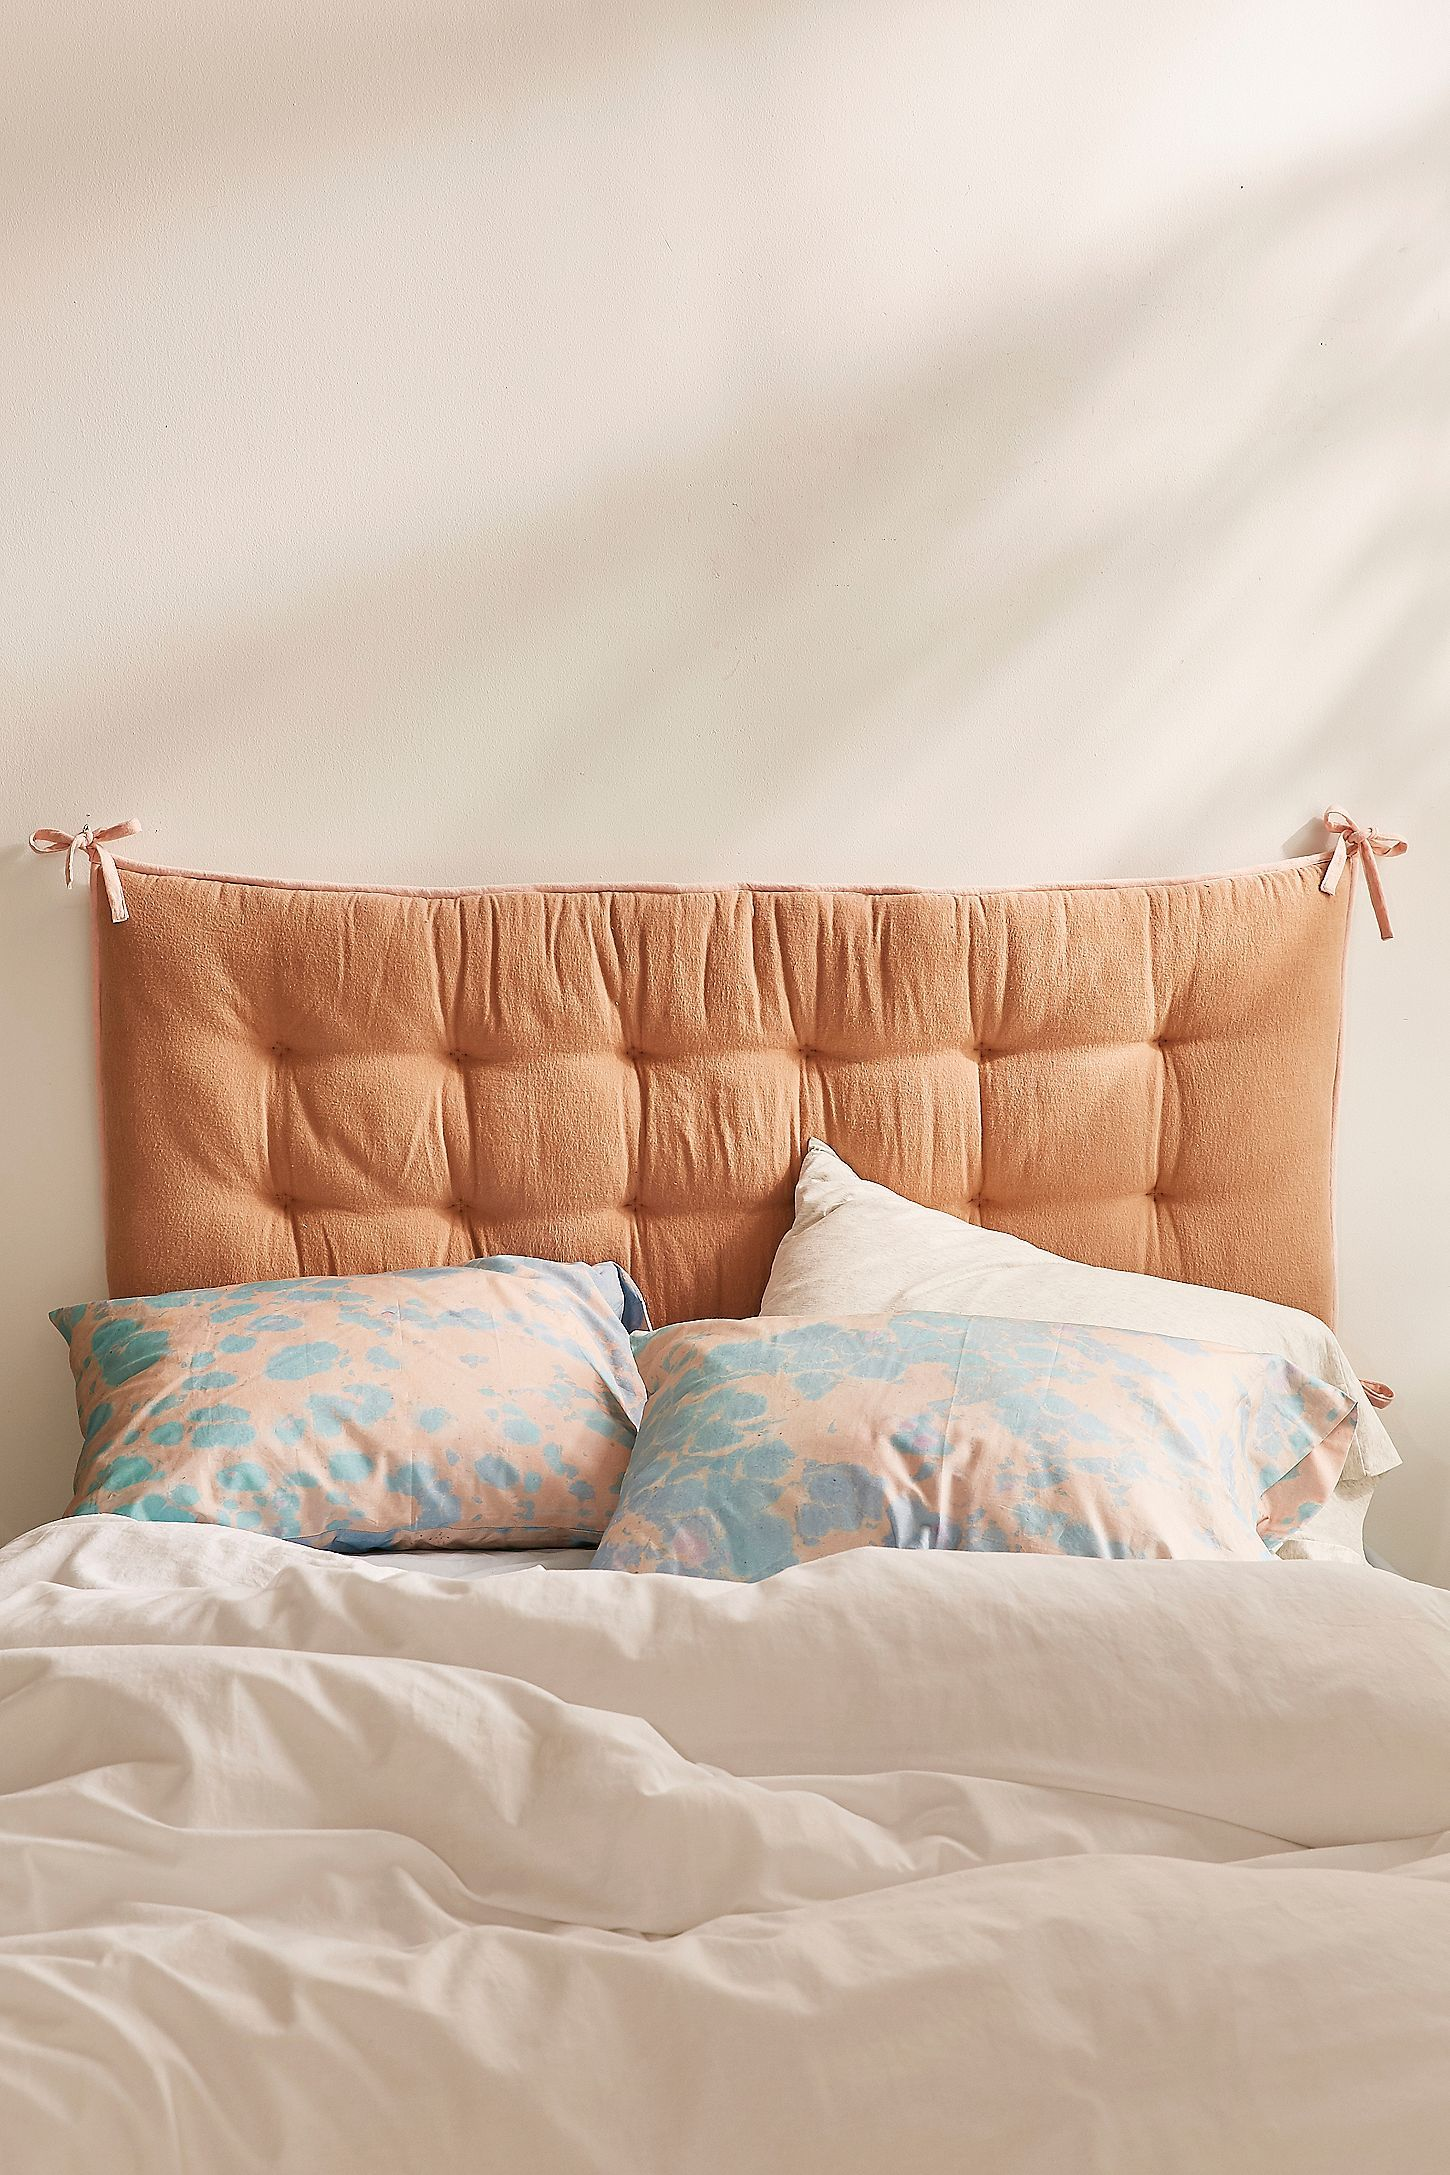 Slide View 1 Convertible Flannel Headboard Pillow Headboard Designs Pillow Headboard Headboards For Beds